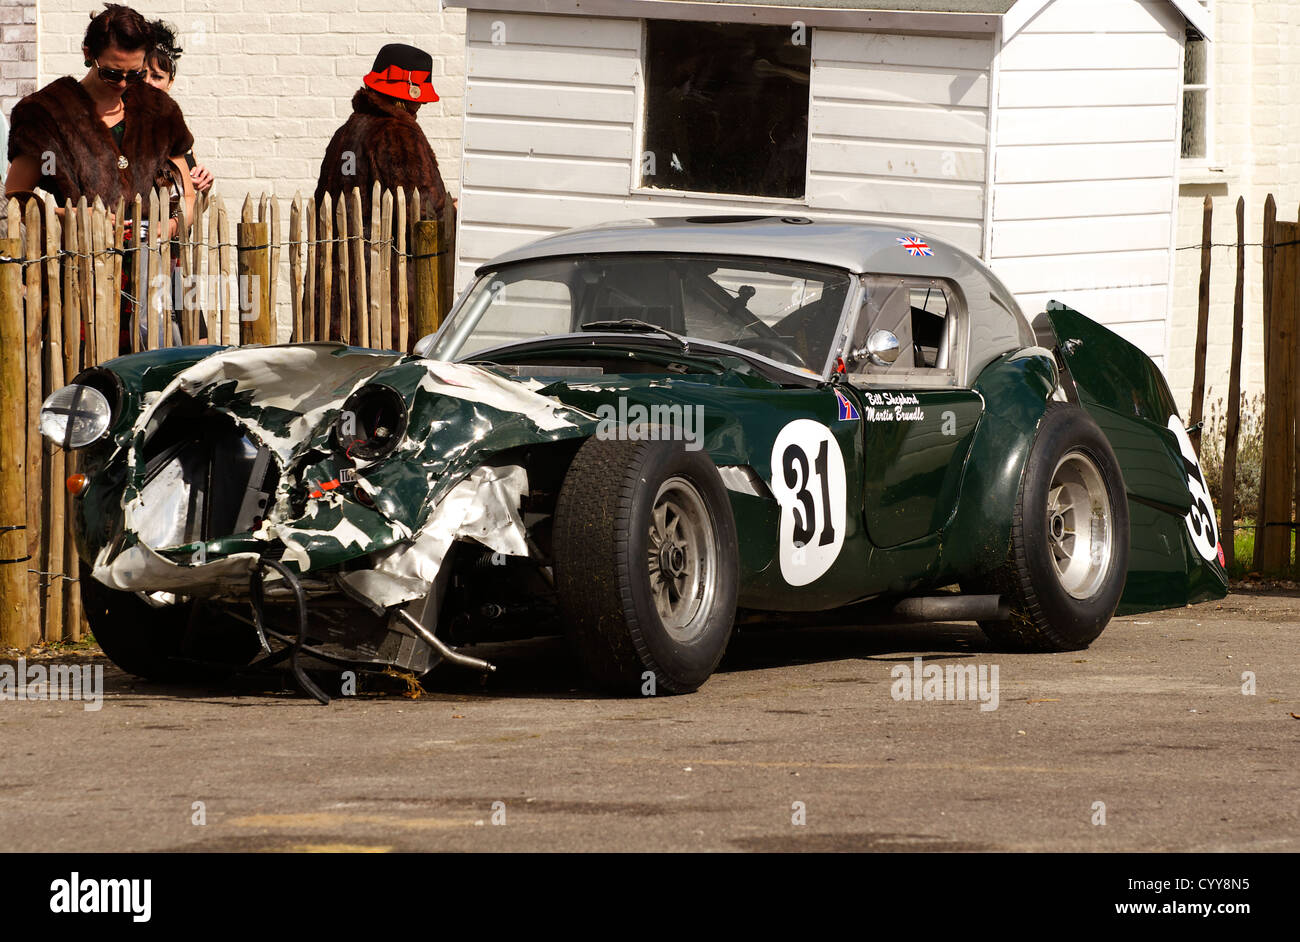 Wrecked Sports Cars